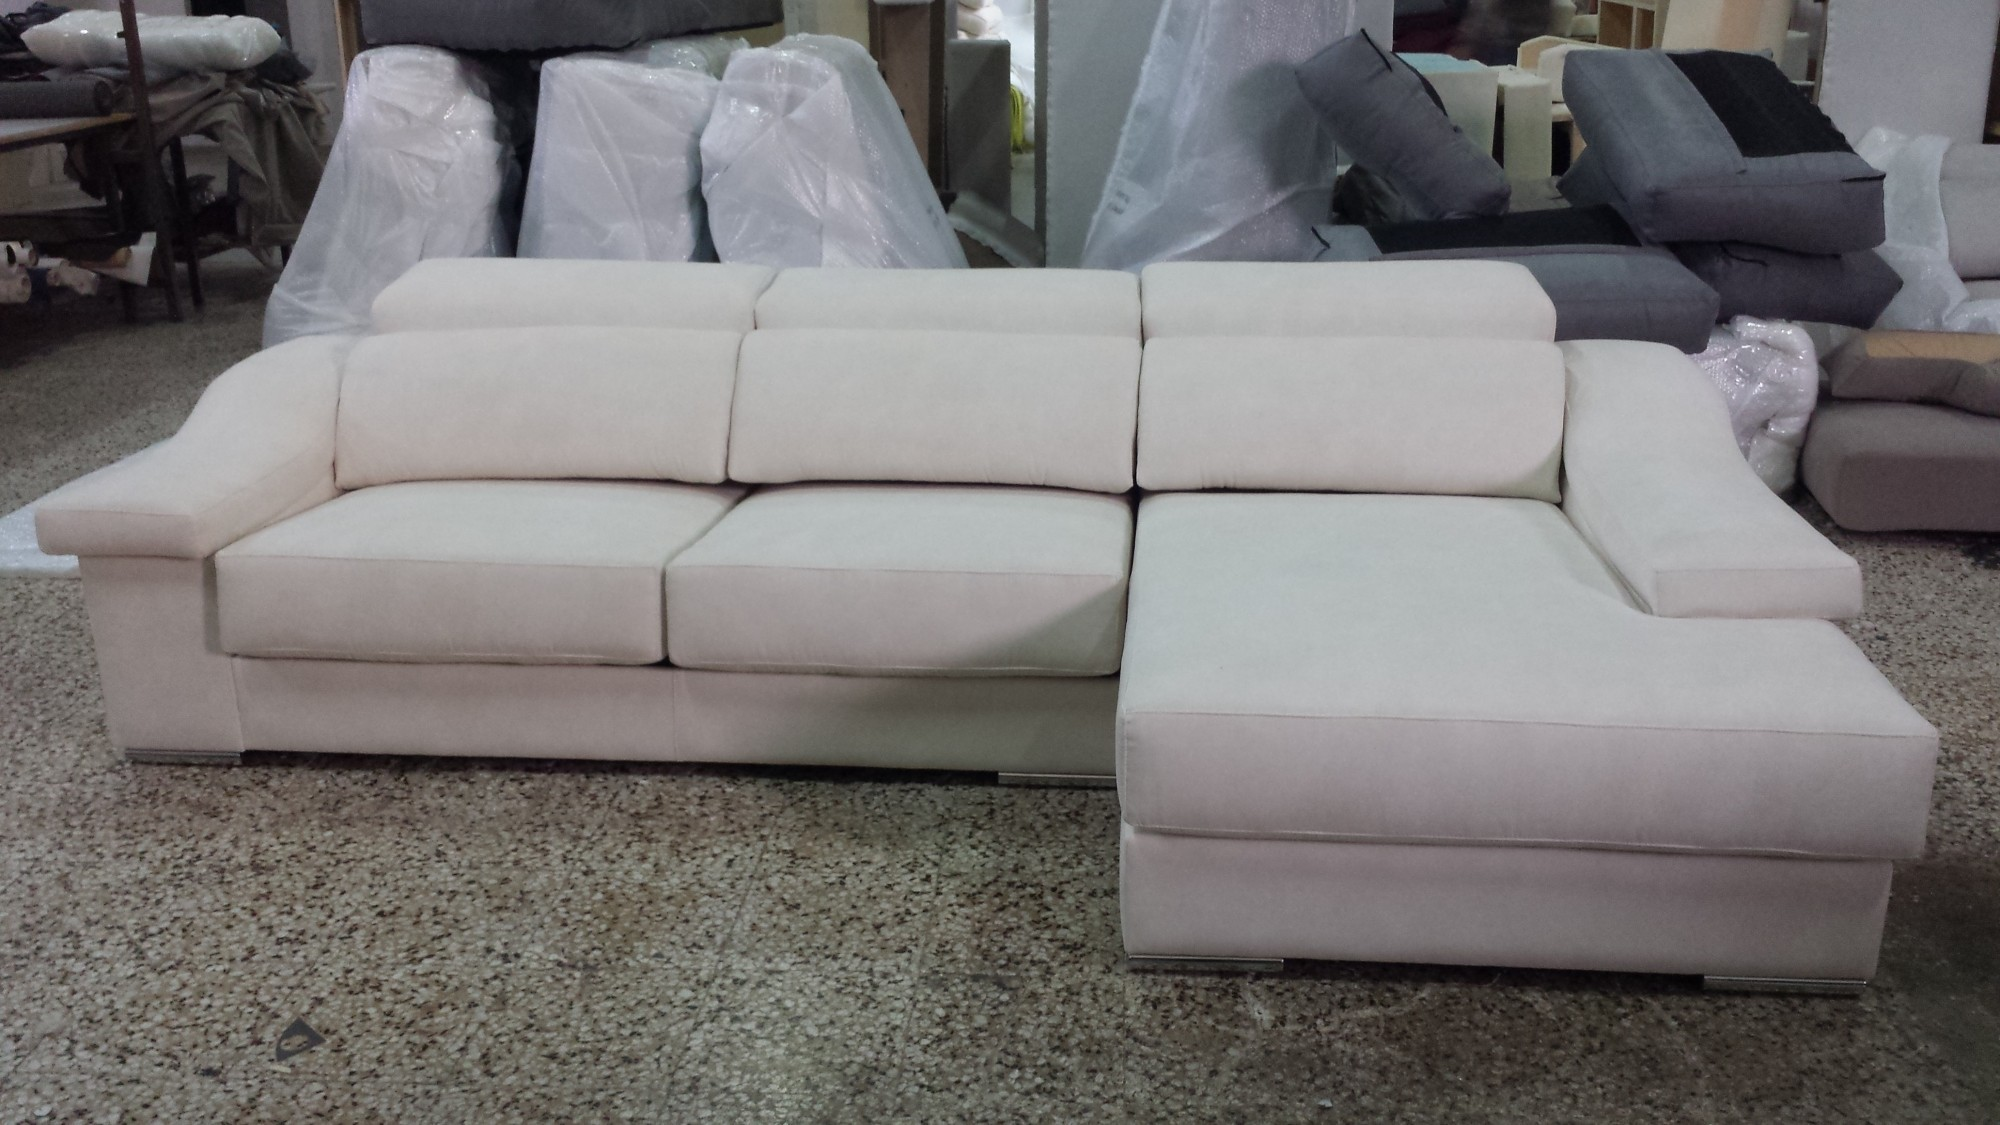 Sofas chaise longue baratos barcelona for Chaise longue barcelona